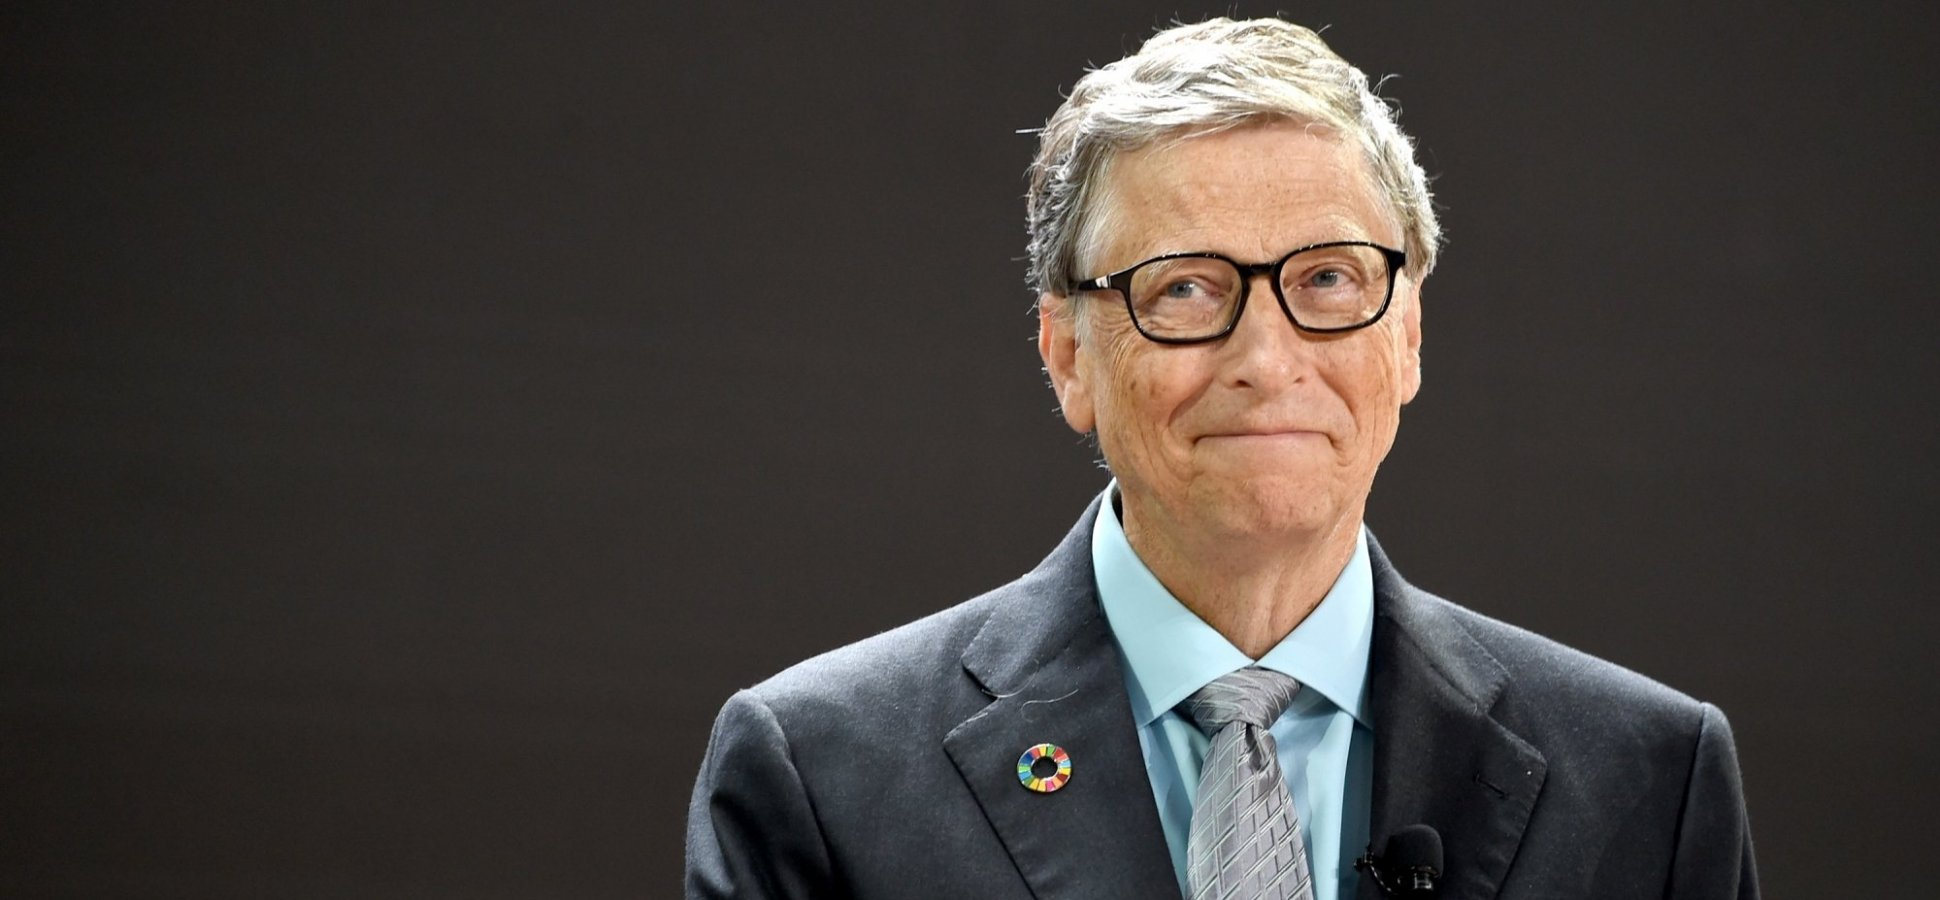 Bill Gates Is Happier at 64 Than He Was at 25 Because He Prioritizes These 4 Things